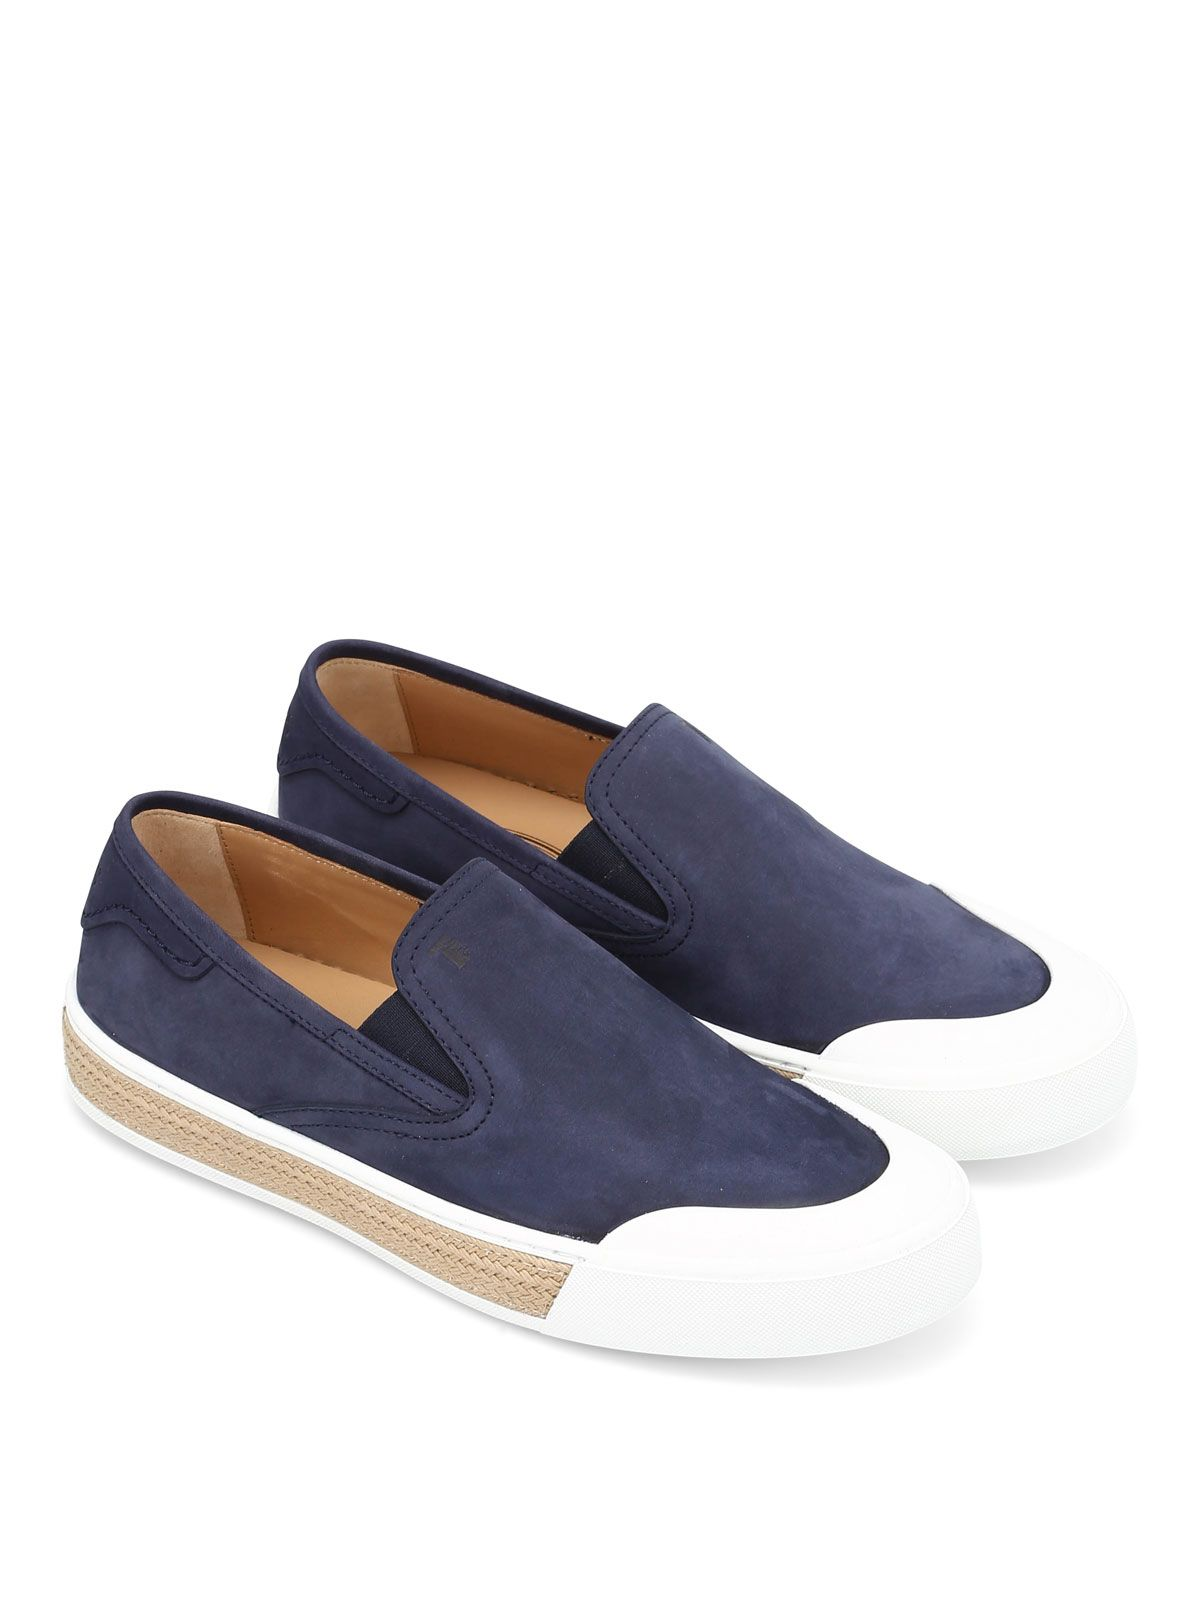 Tods 26a Nubuck Slip-ons